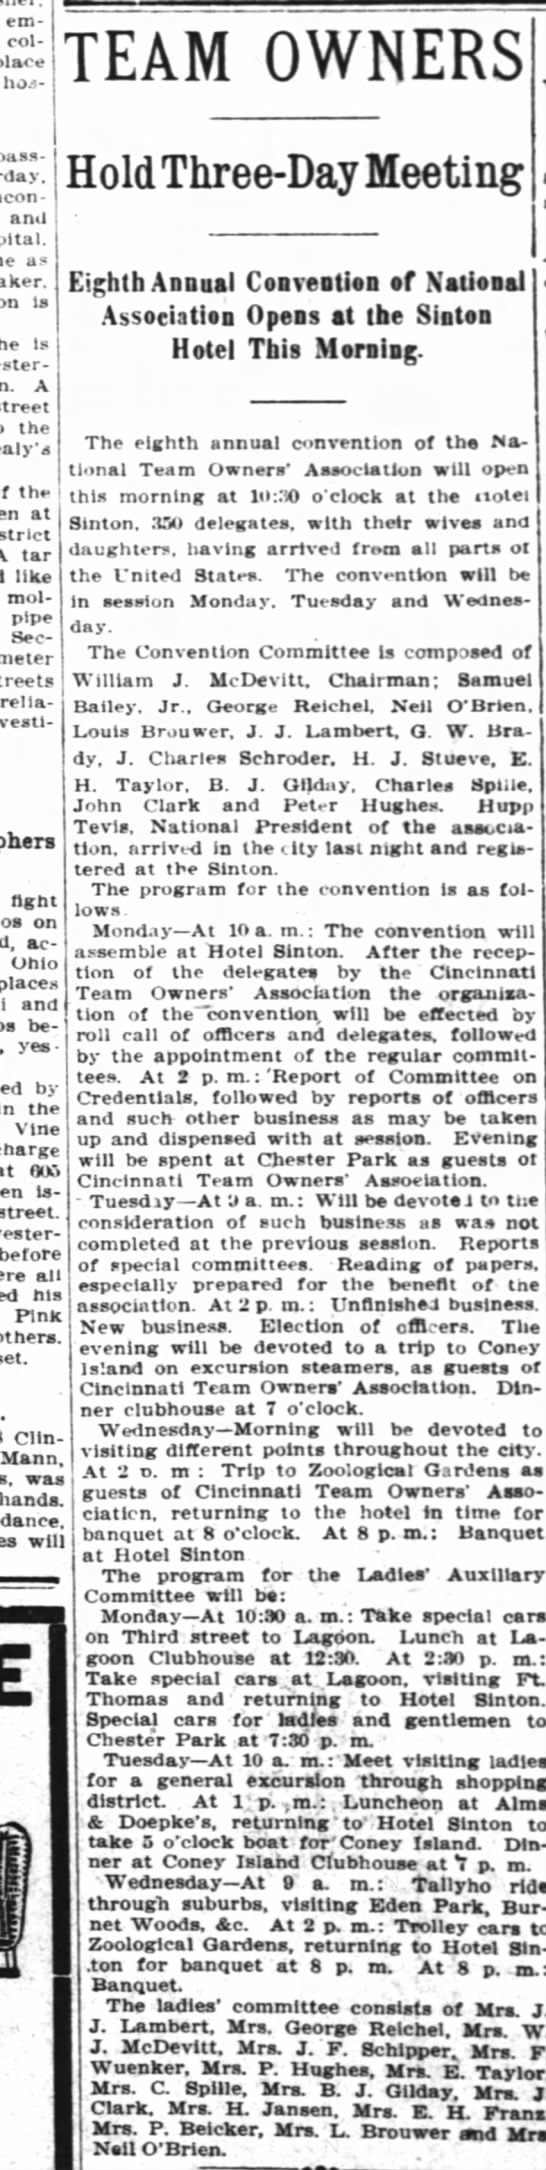 W J McDevitt chairman of National Team Owners Association 20 JUN1910 - employed col place hospital. passing and as...